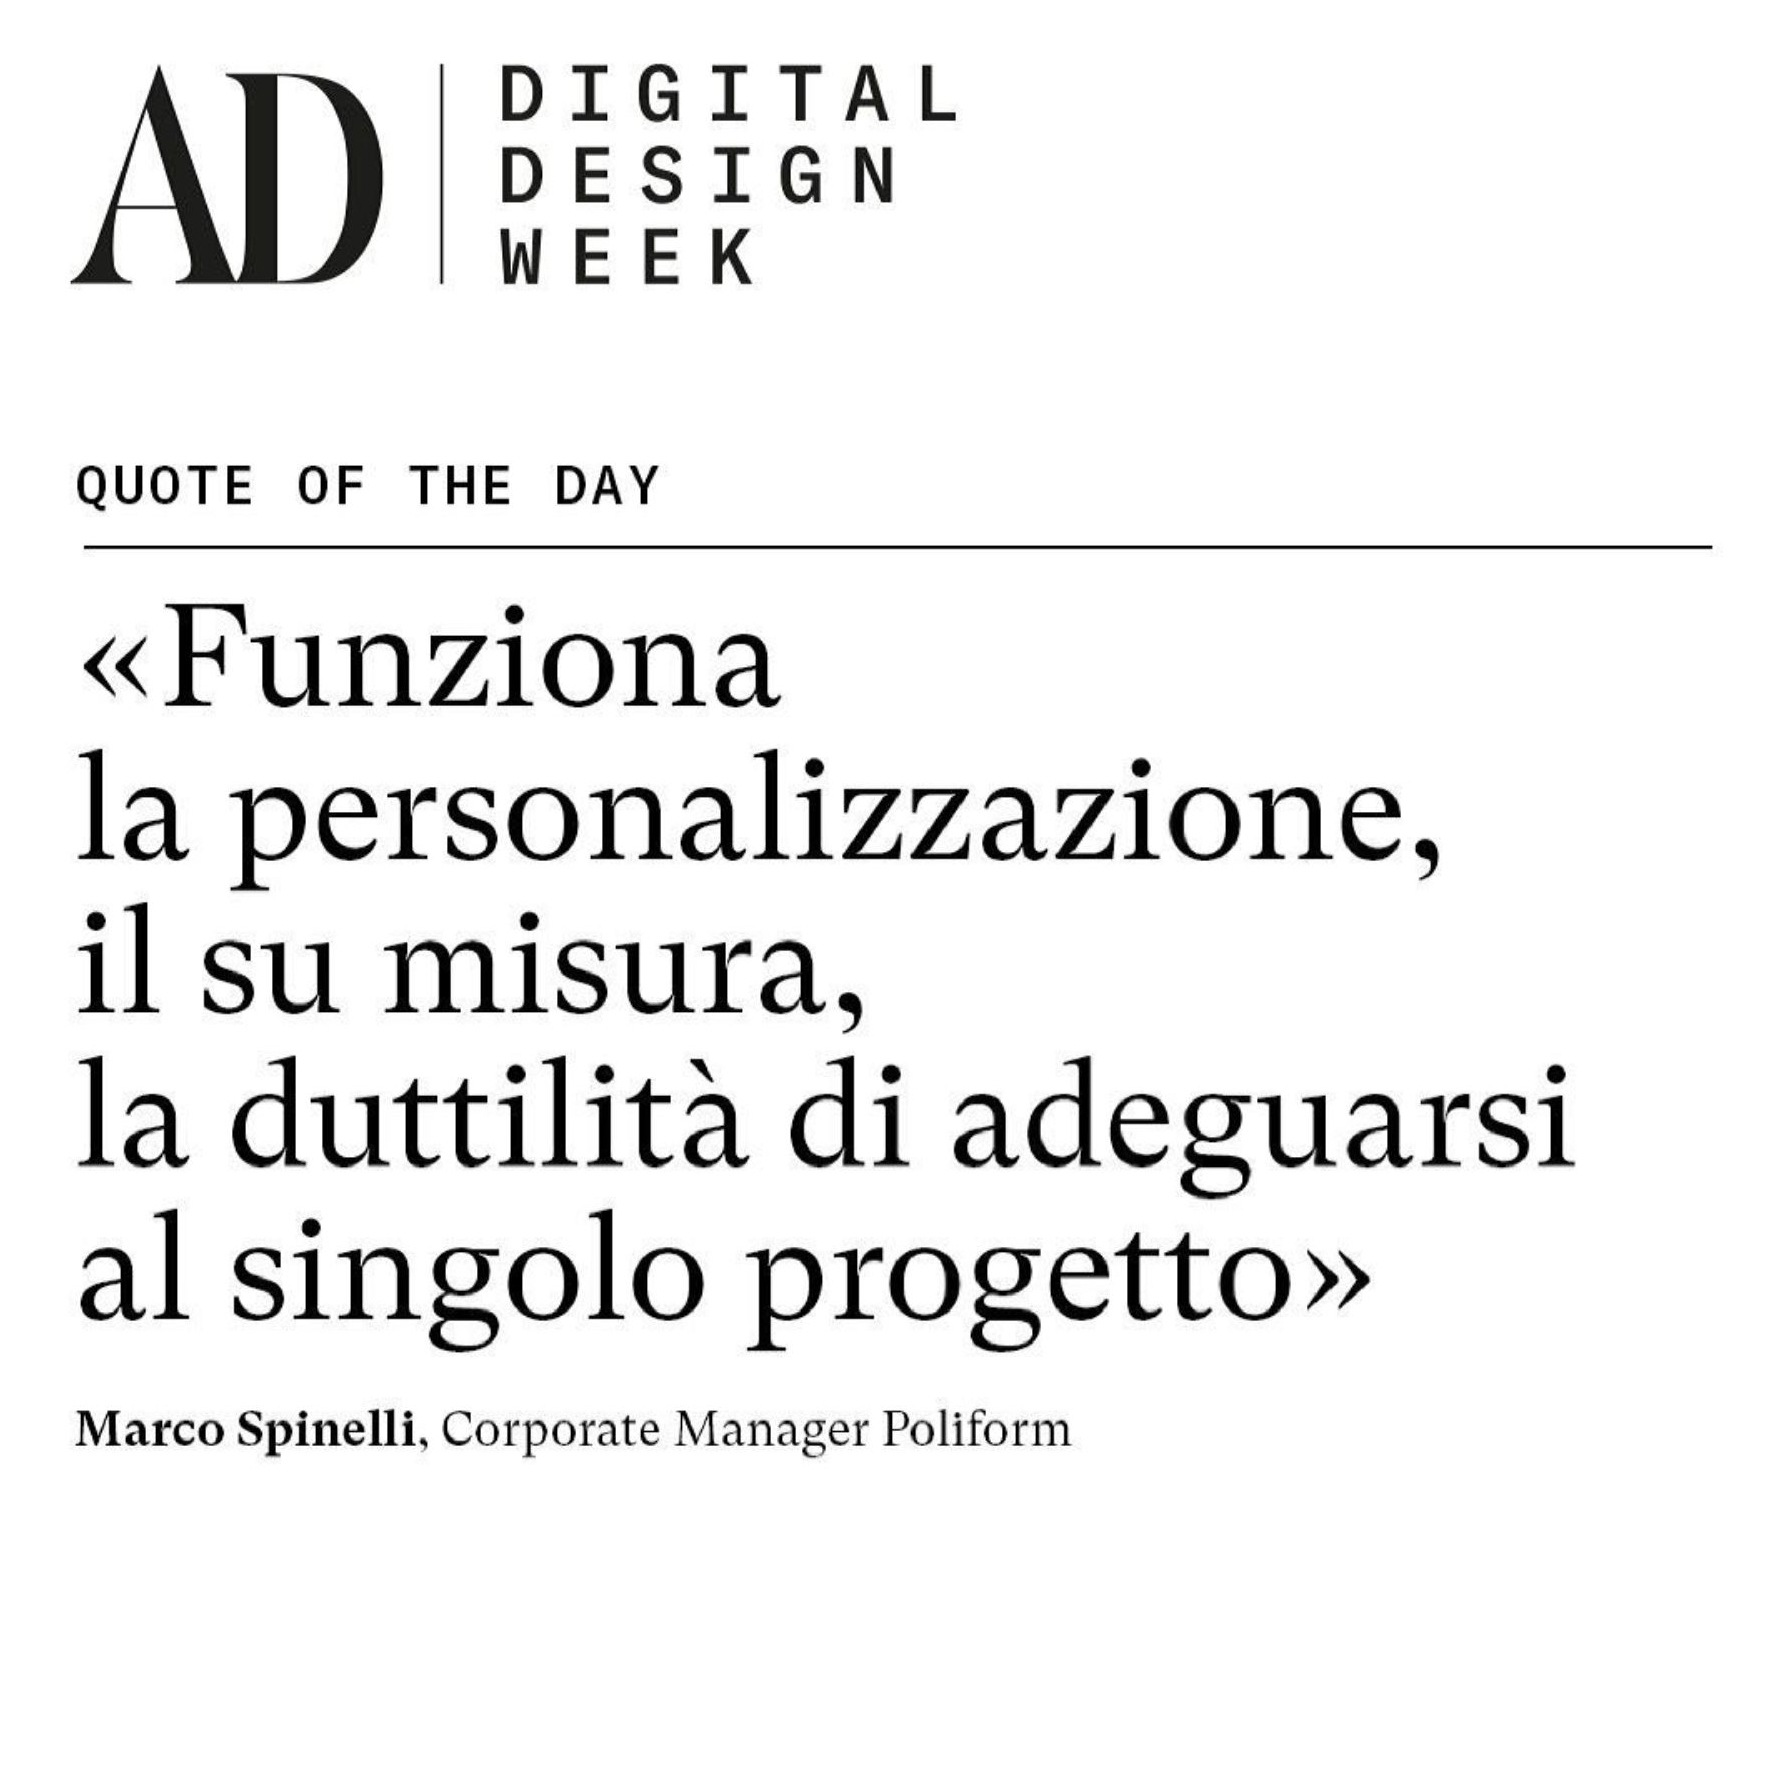 Digital-Design-Week-quote-custom-Marco-Spinelli-Poliform